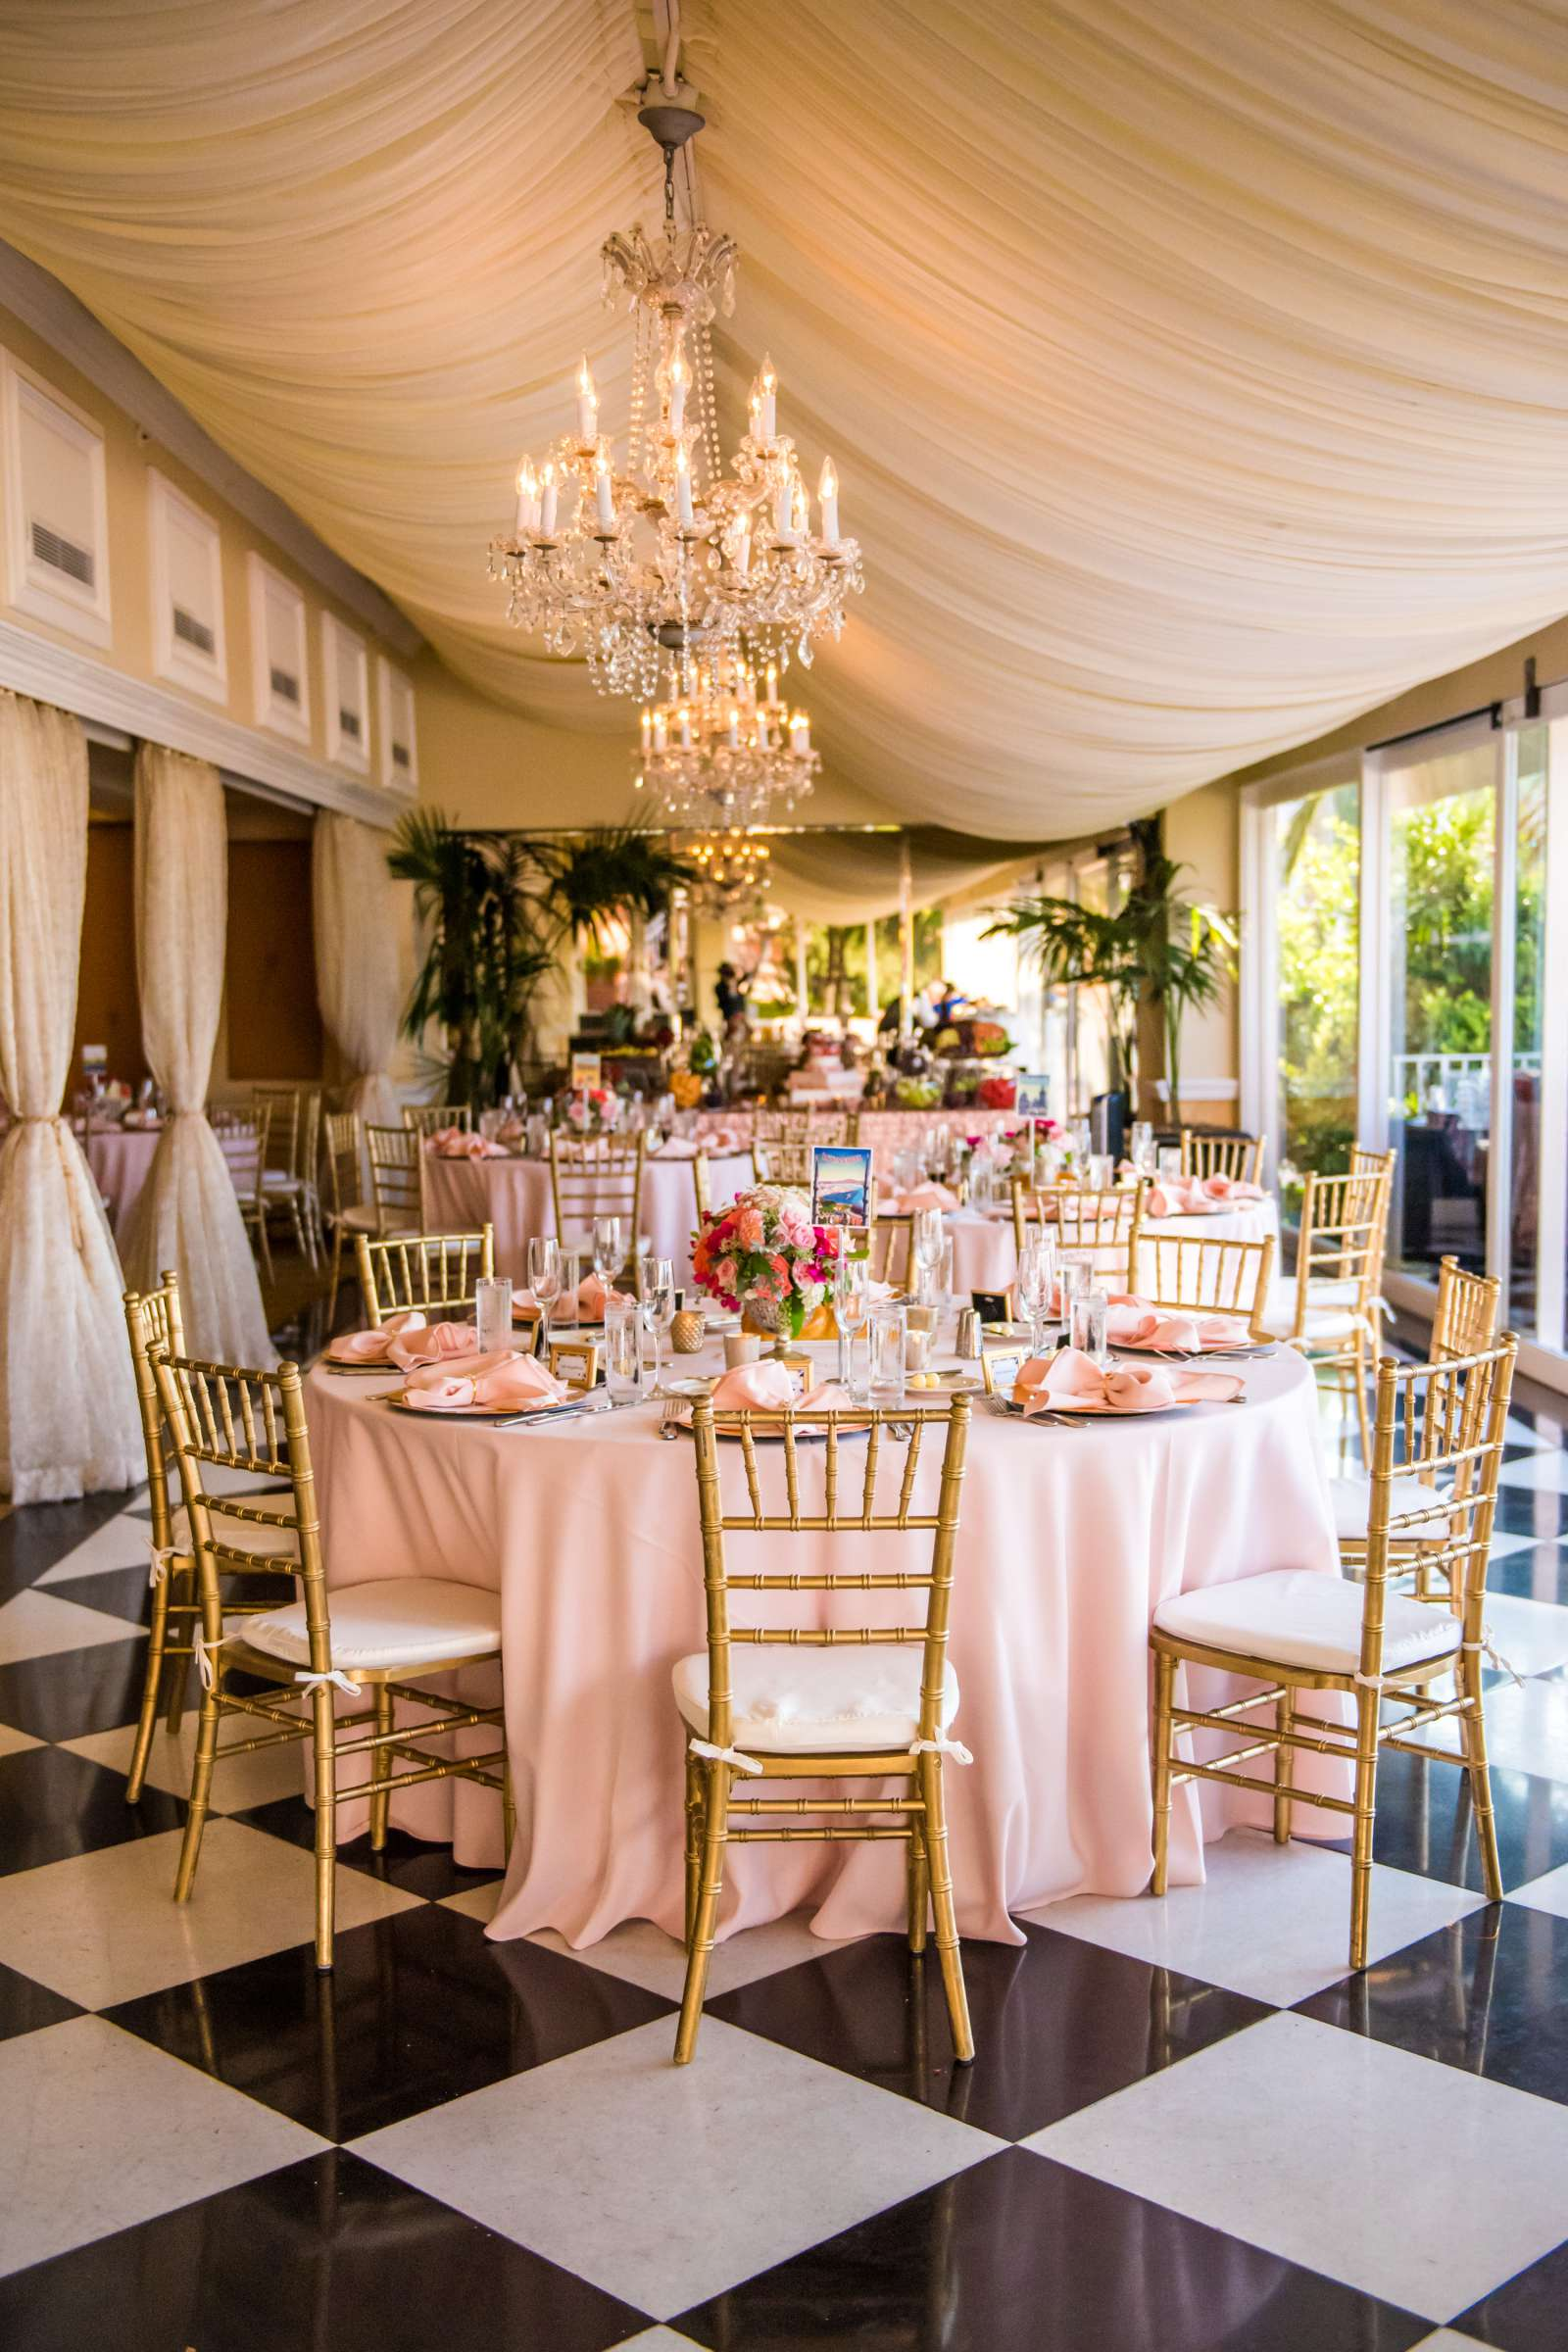 La Valencia Wedding coordinated by First Comes Love Weddings & Events, Viviane and Joshua Wedding Photo #111 by True Photography